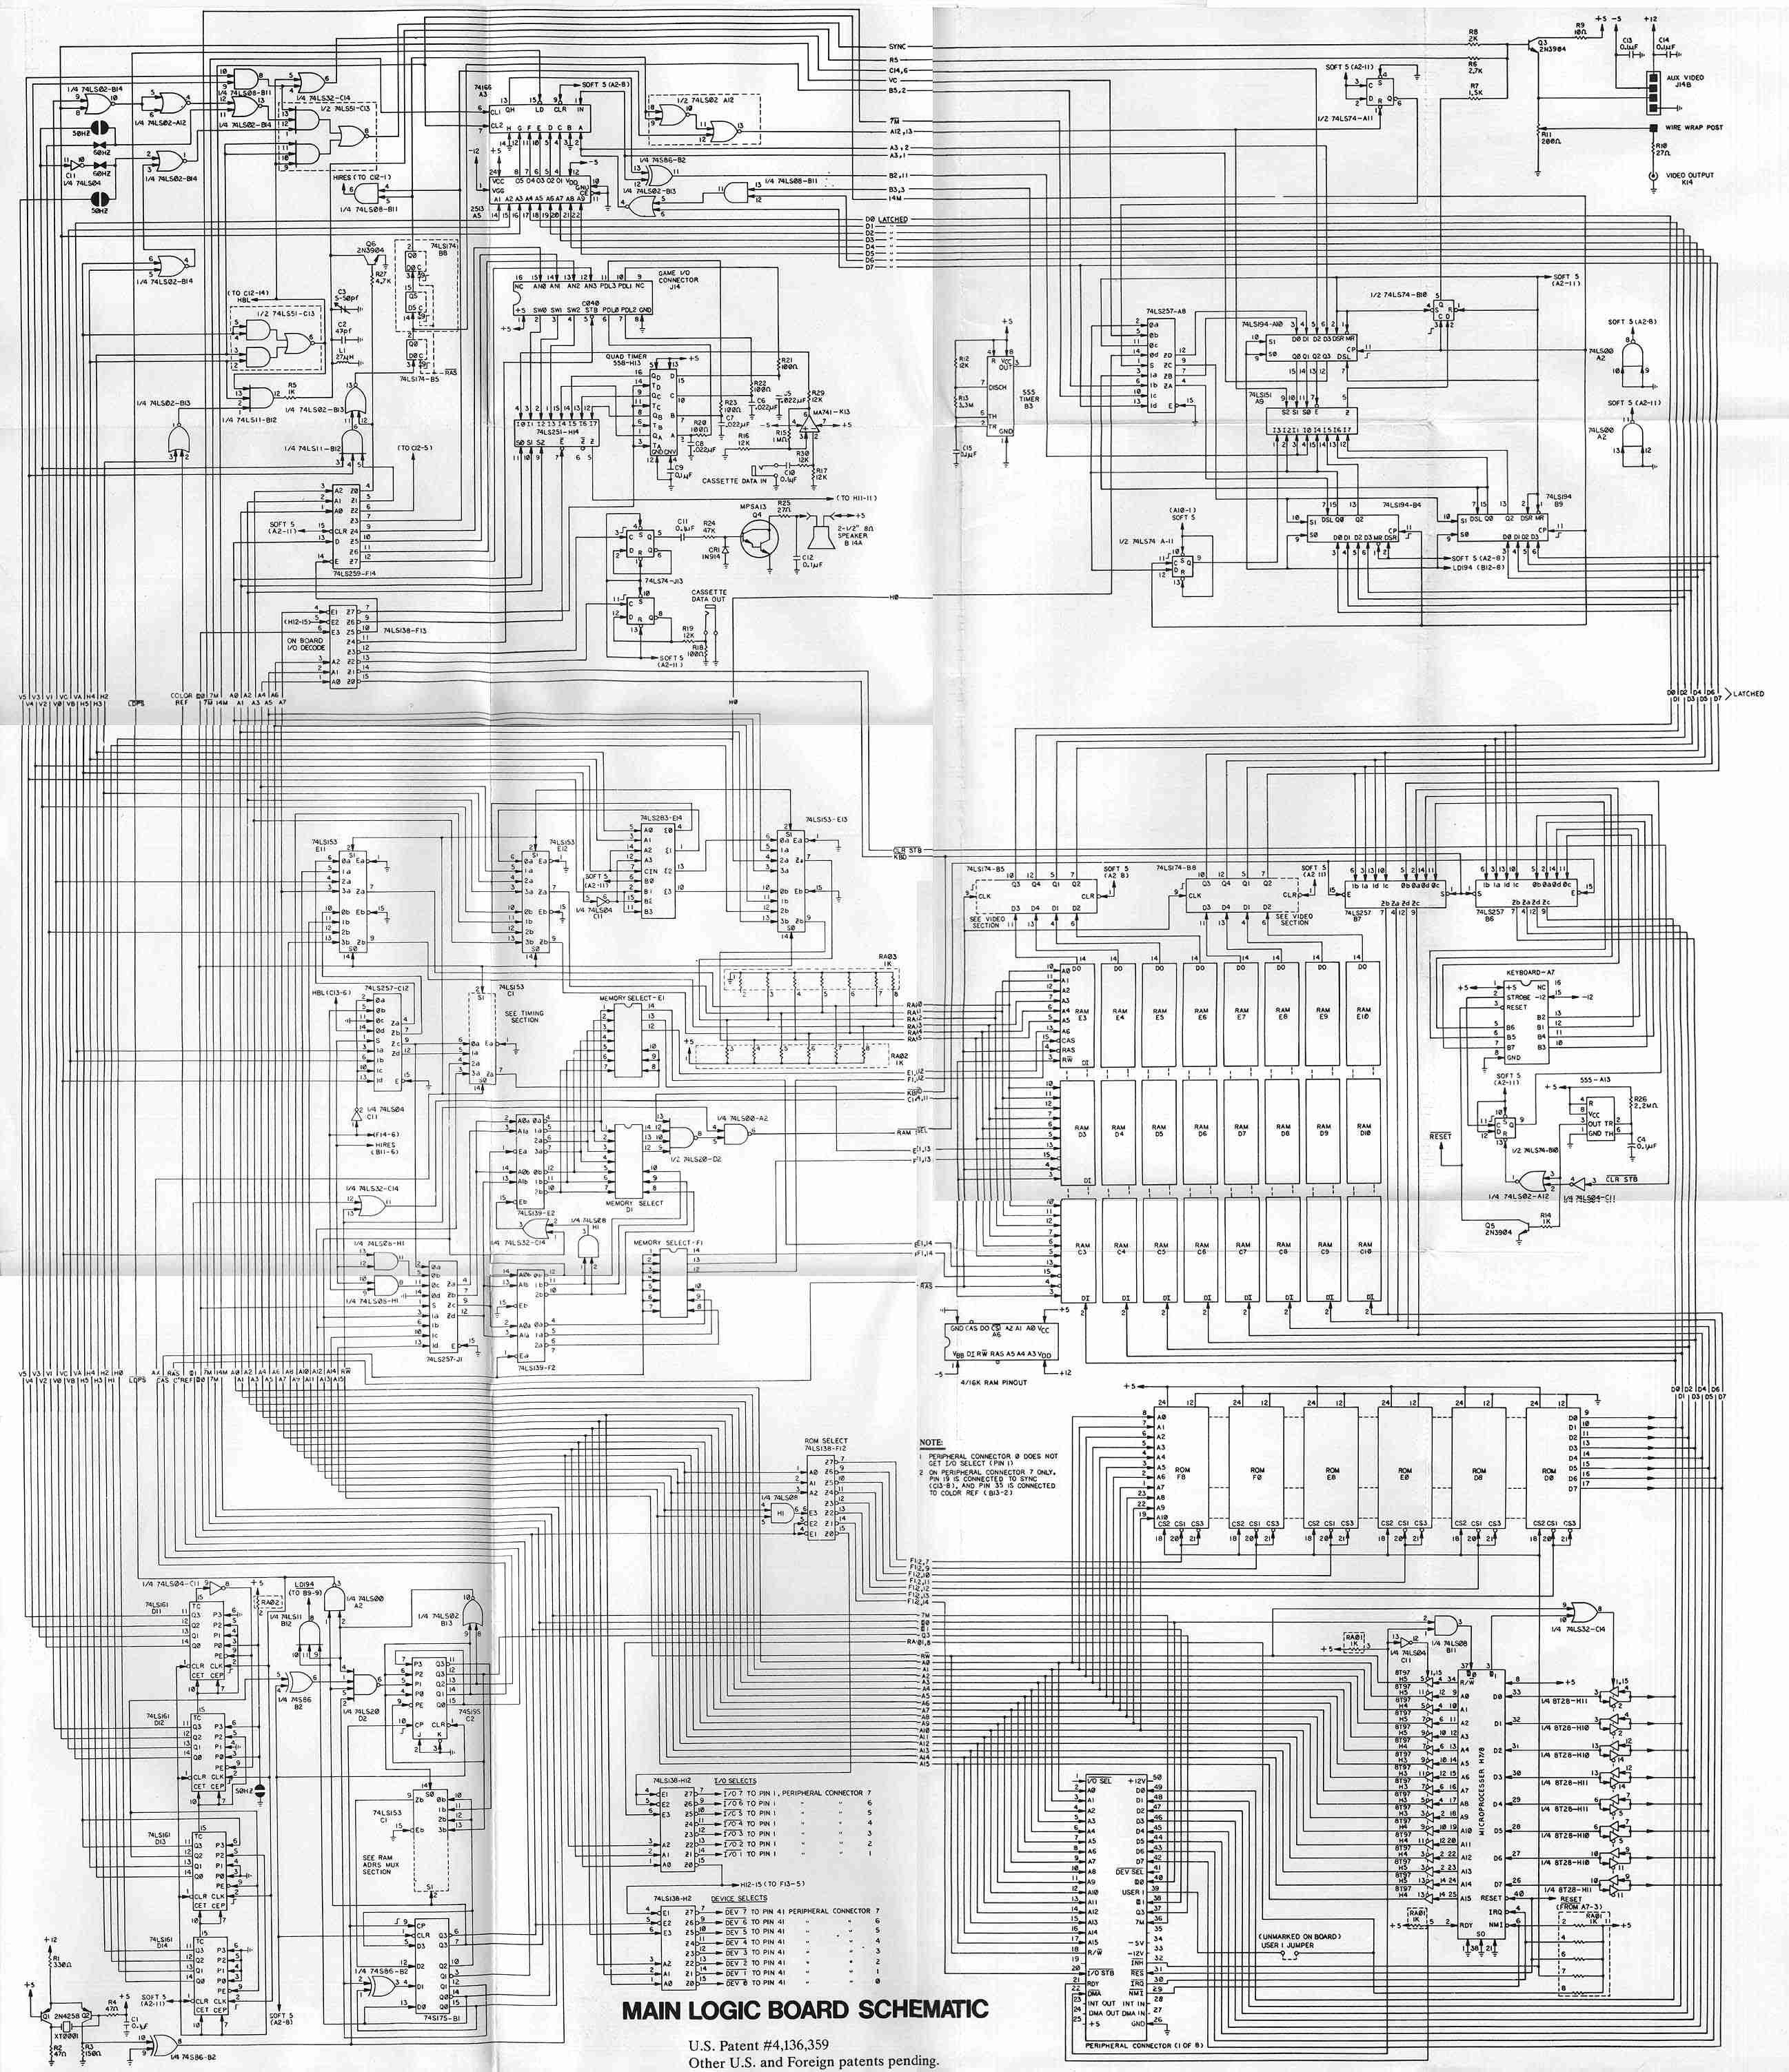 apple 2 main logic board electronic circuit schematic [ 2595 x 3006 Pixel ]